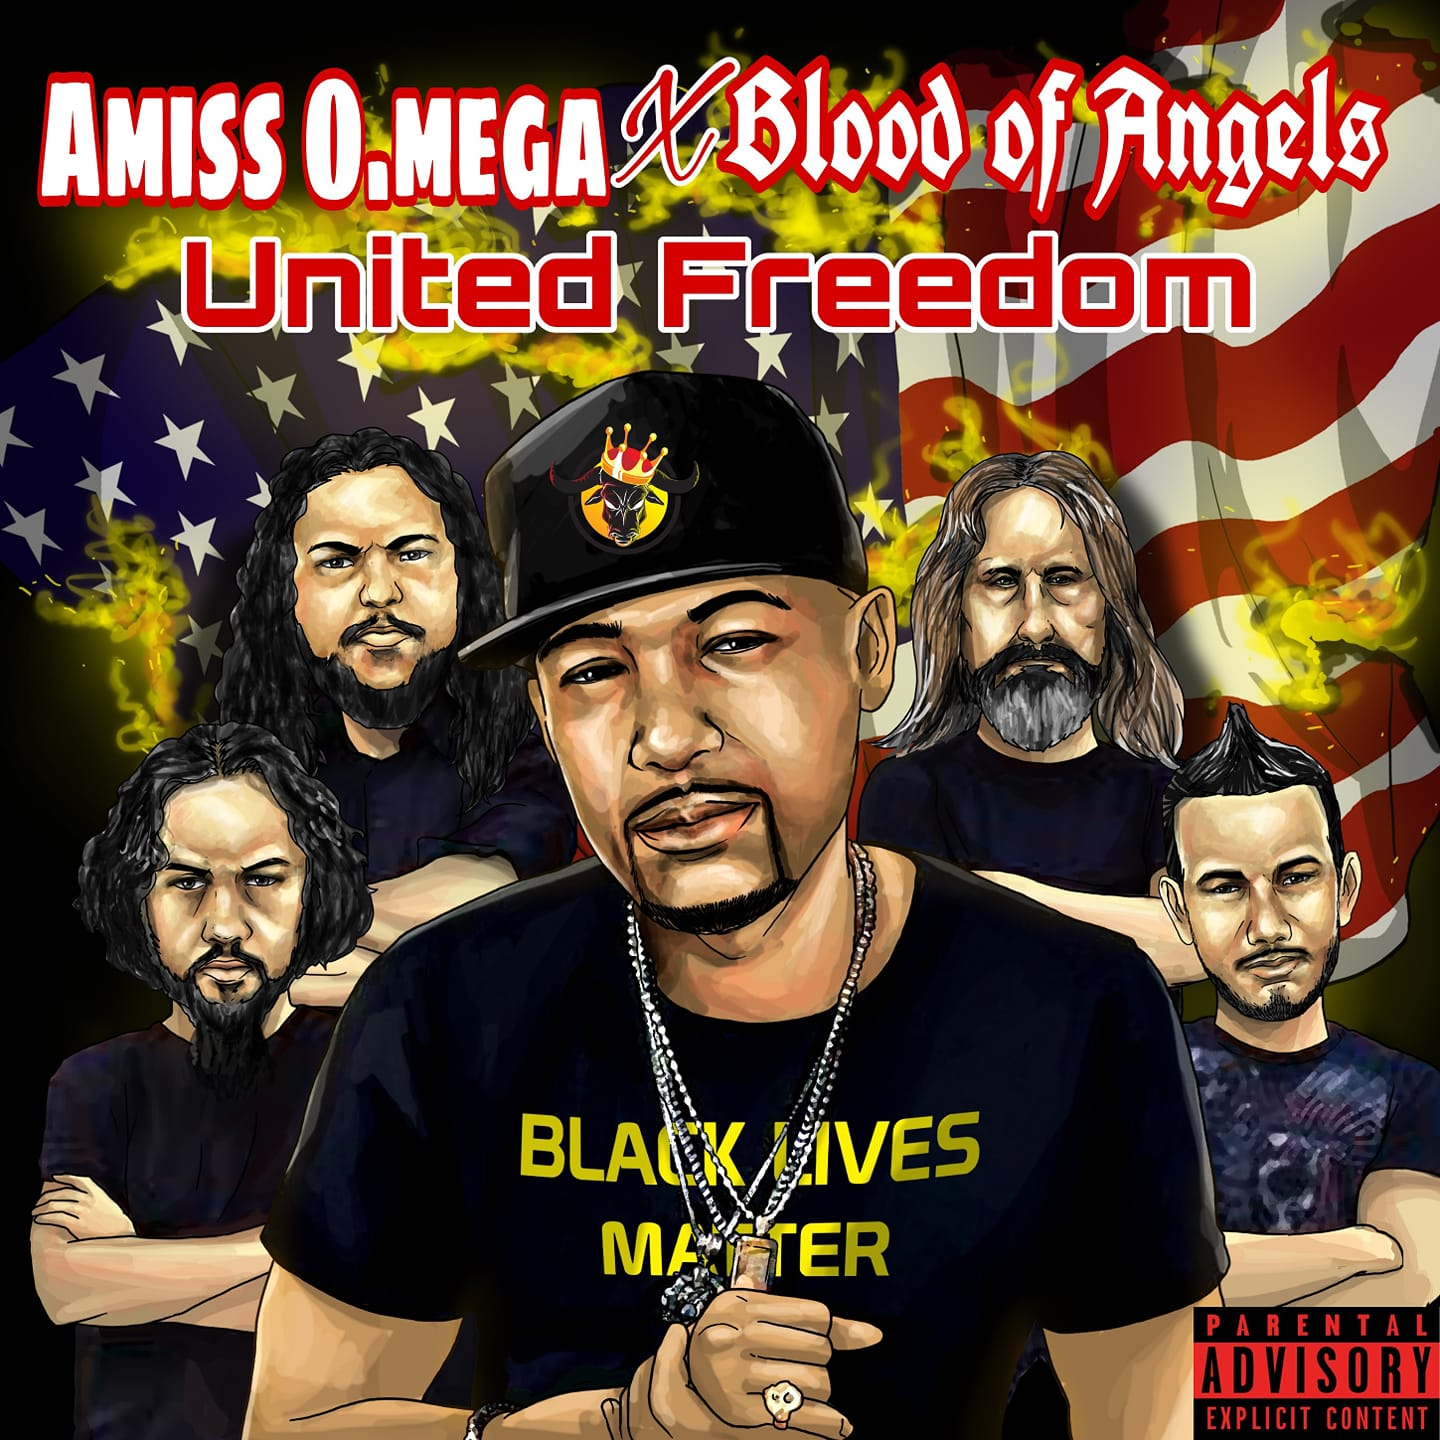 Blood of Angels & Hip-Hop Artist Amiss O.Mega collaborate for the song 'United Freedom' 1